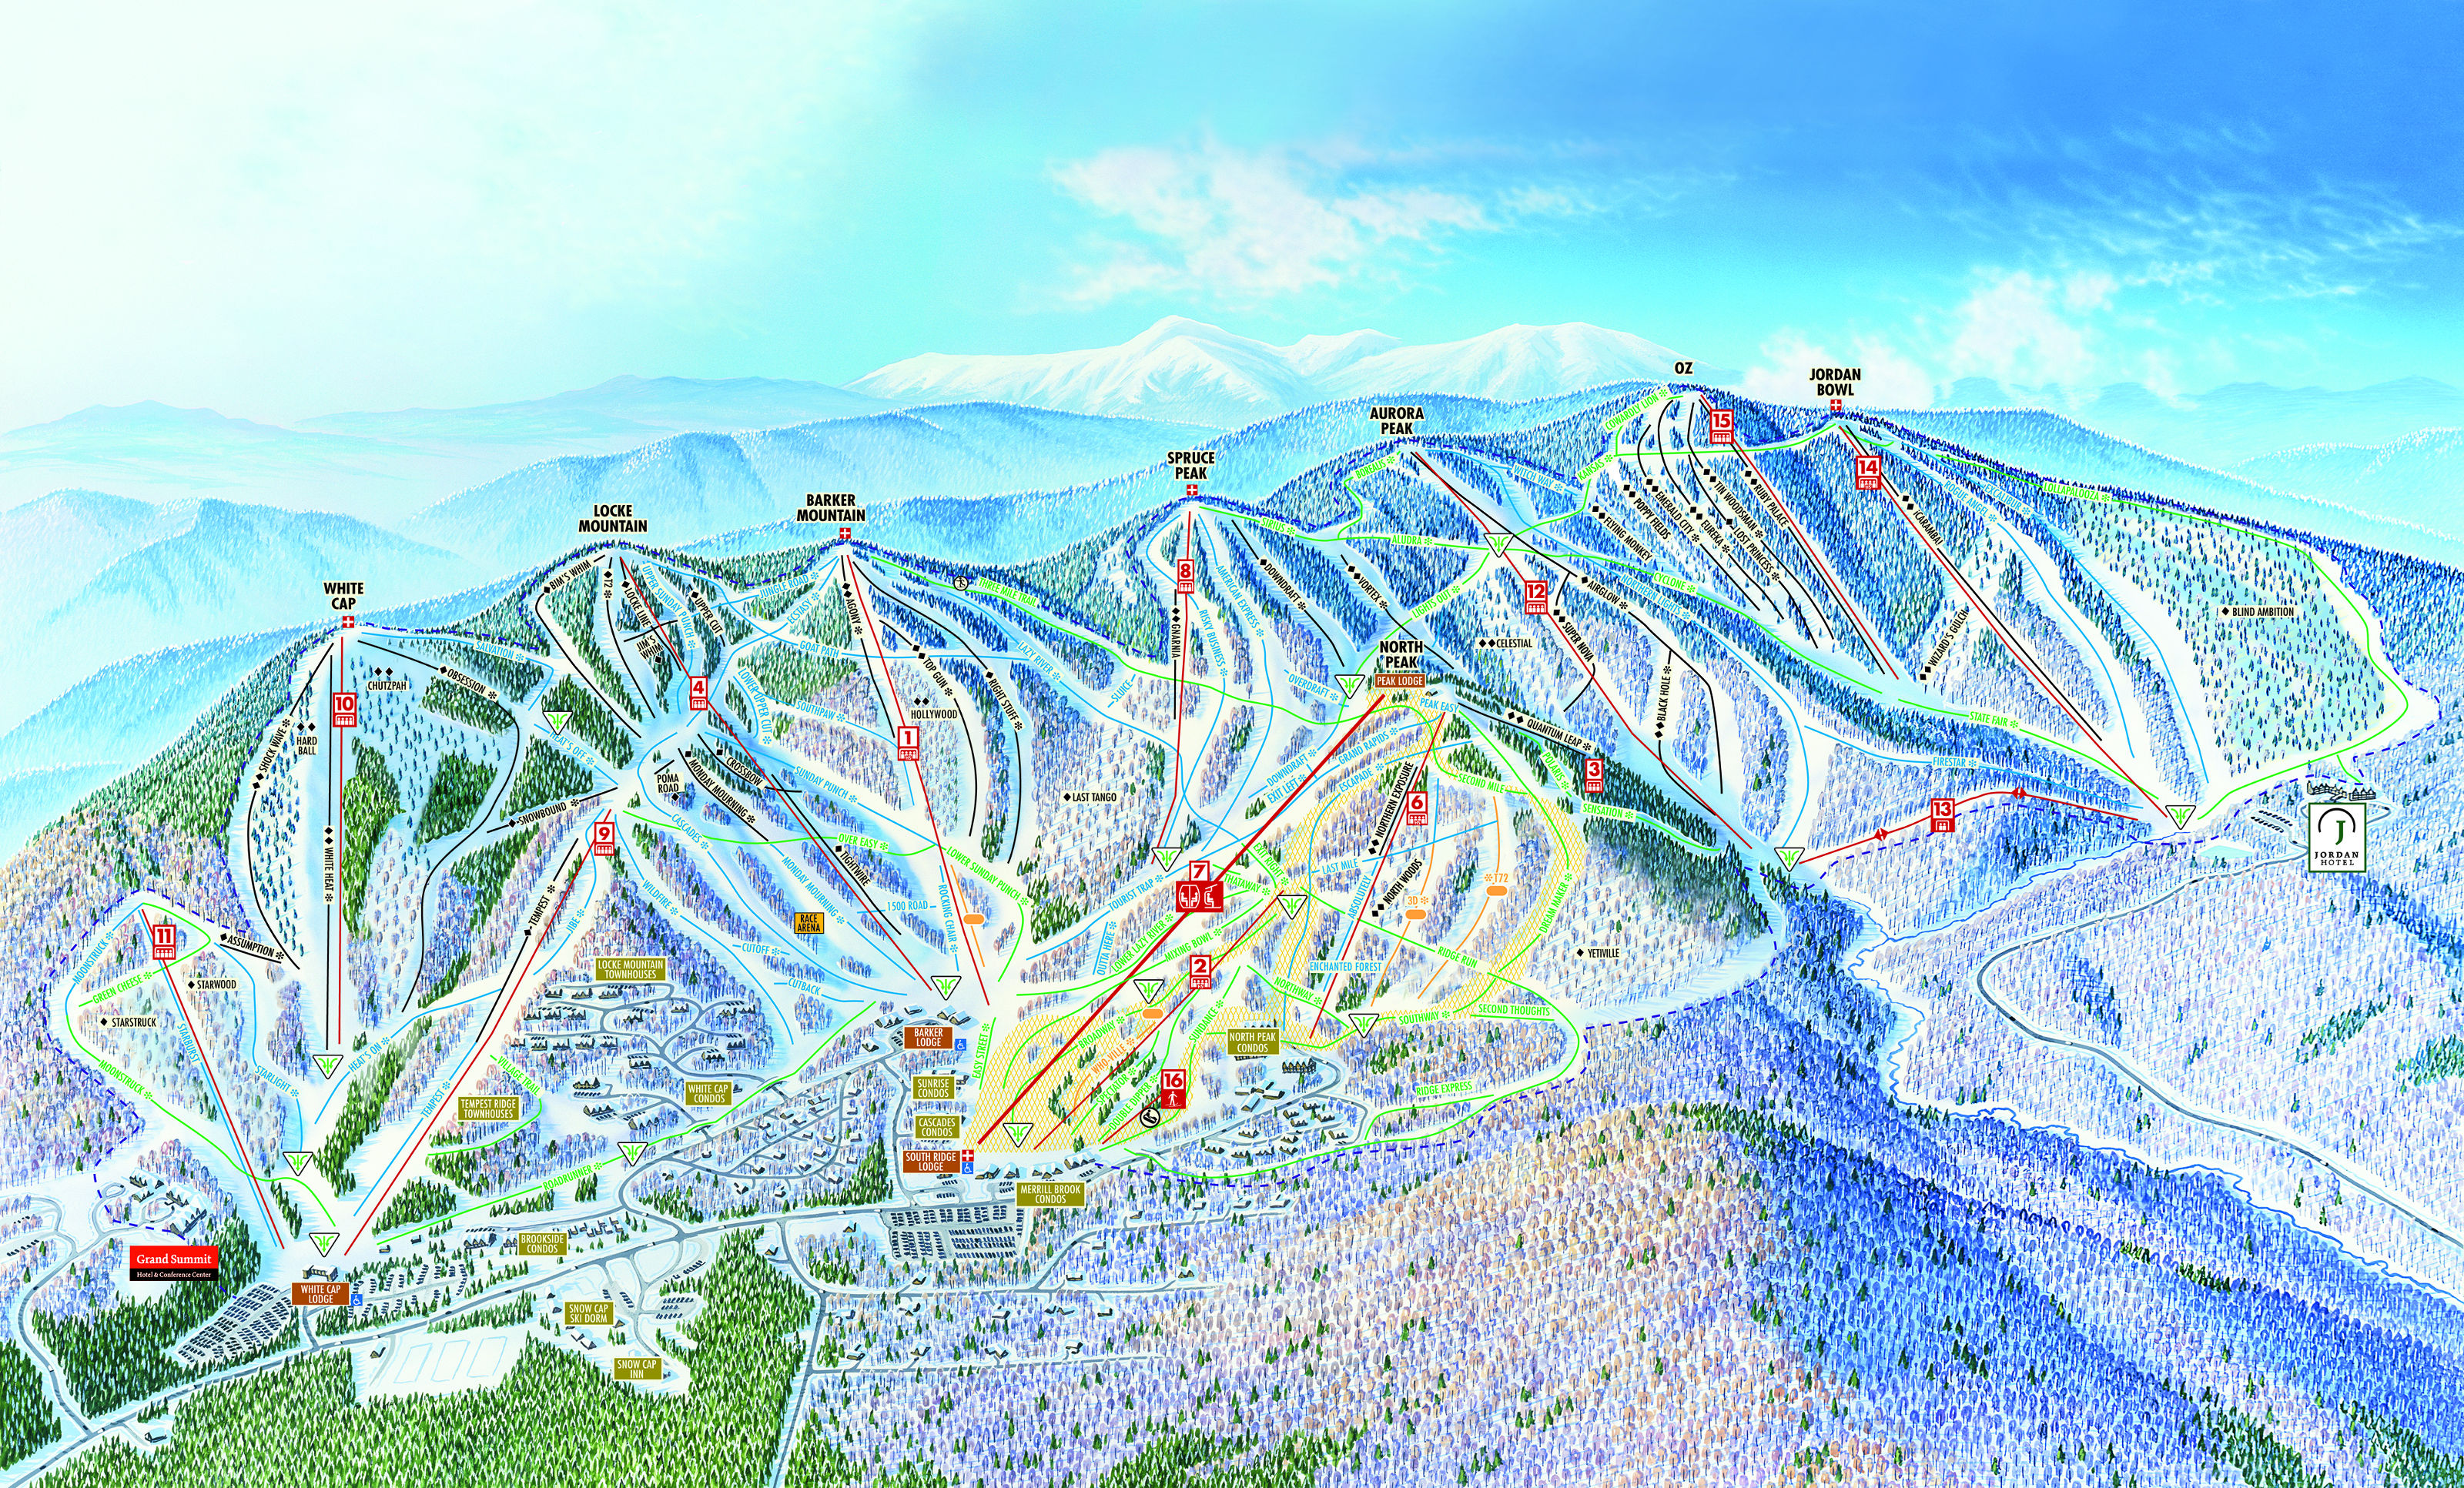 Sunday River Piste Maps - Map of us mountain ranges and rivers